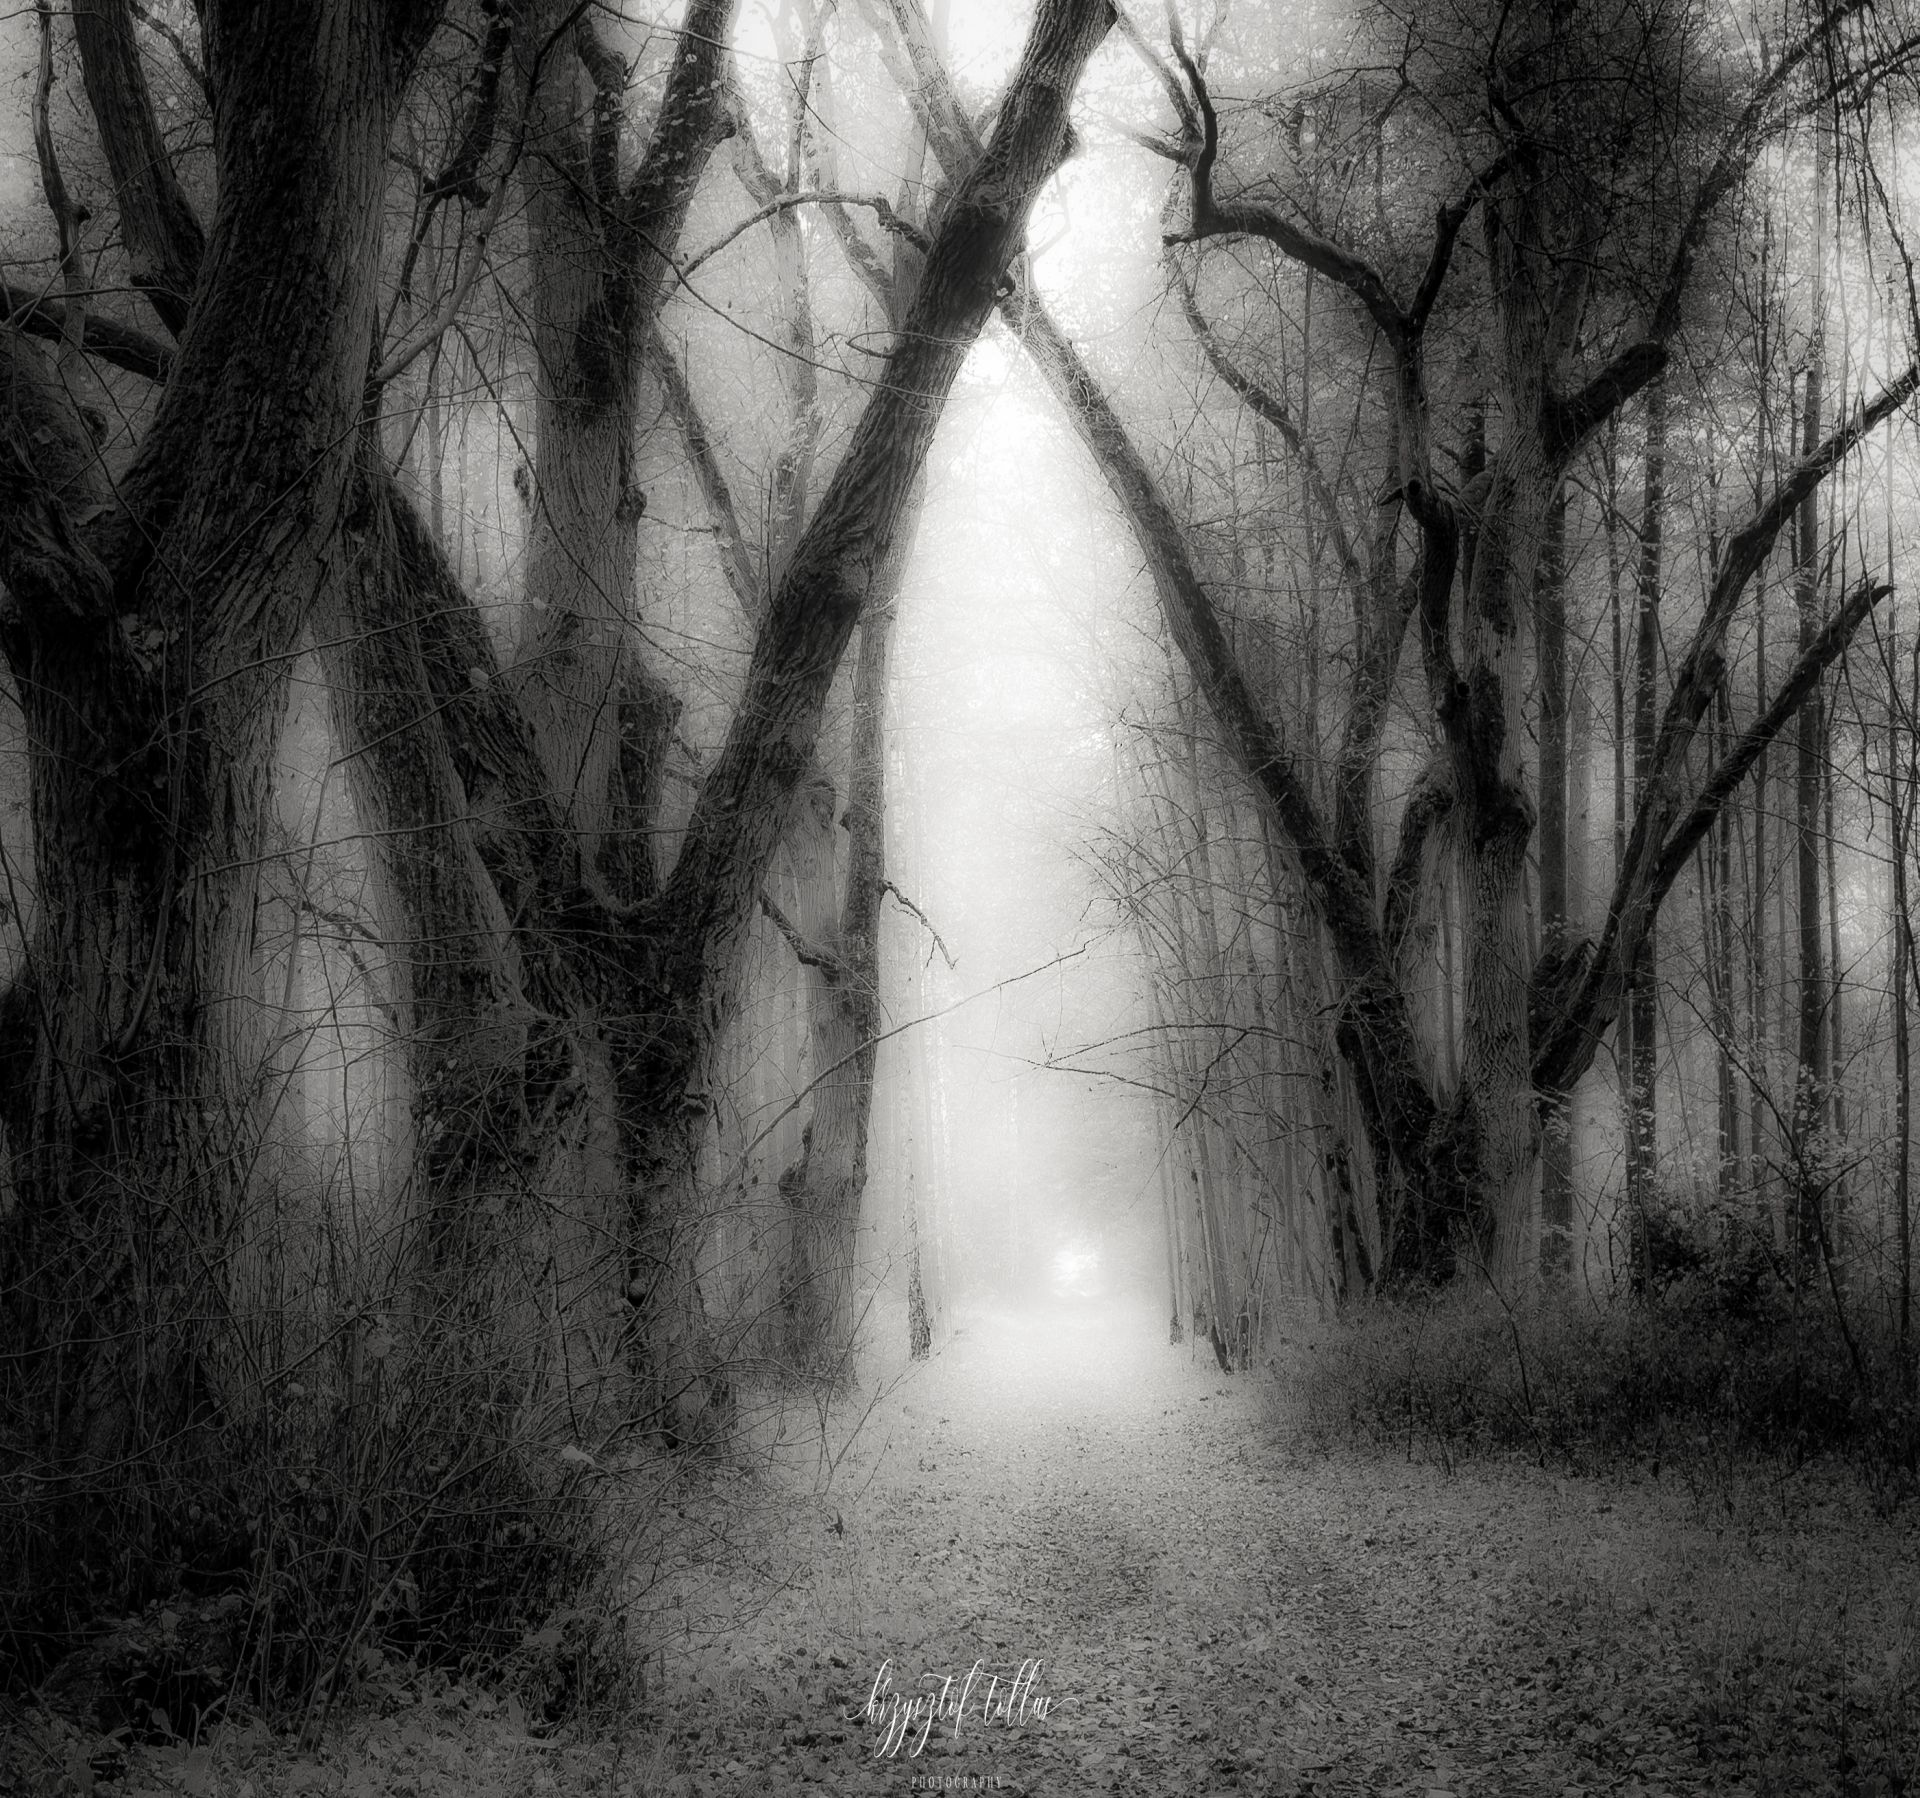 forest, autumn, nature, forest road, fog, dawn, forest atmosphere, light, leaves, old trees,, Tollas Krzysztof